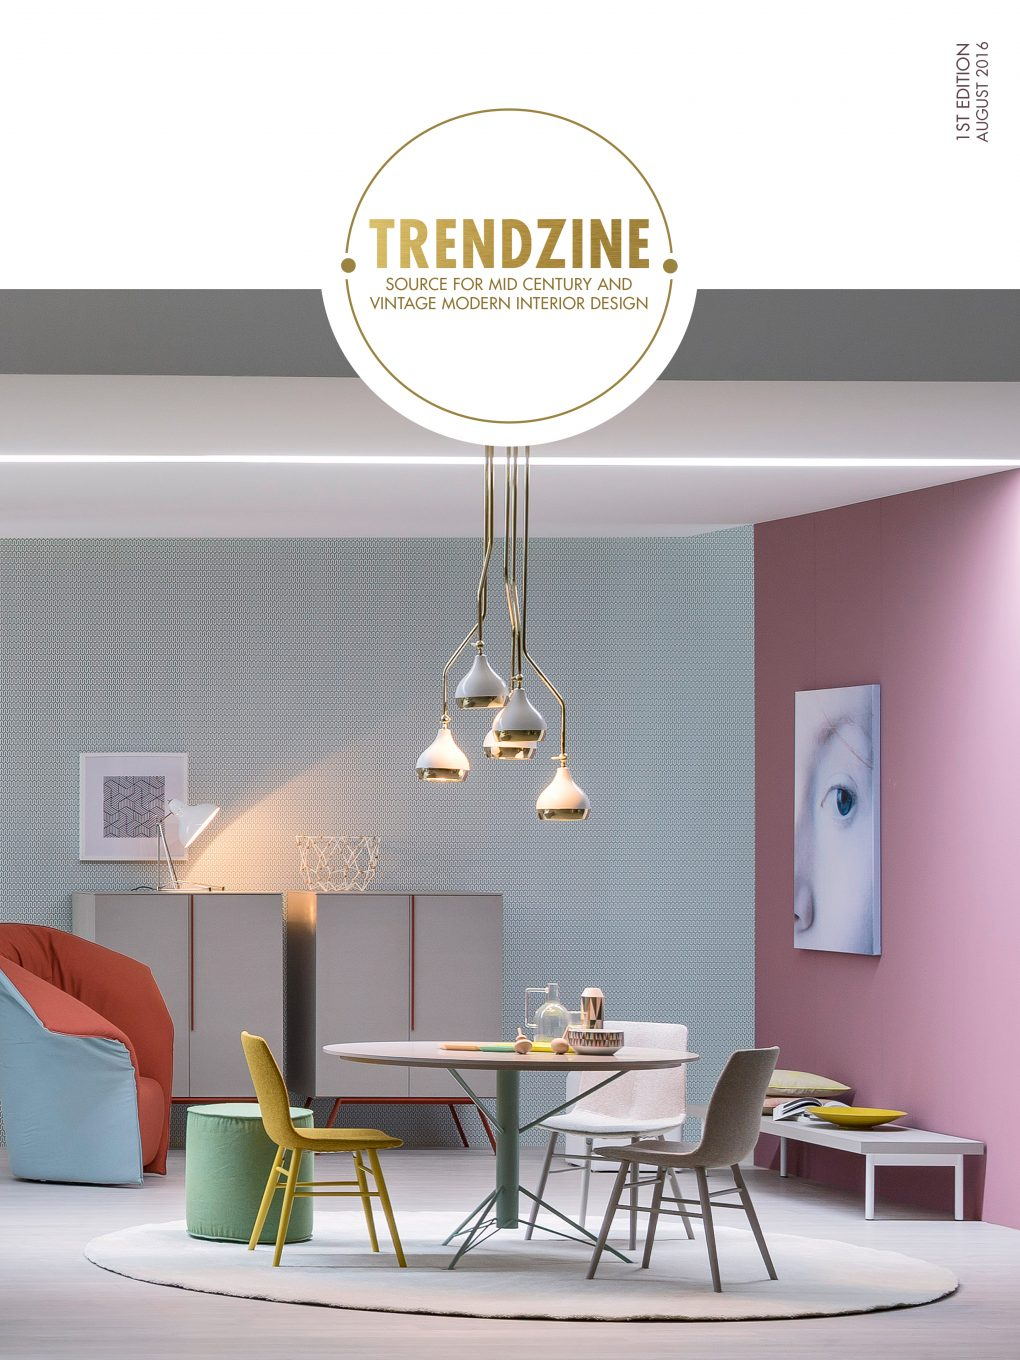 TRENDZINE: YOUR BRAND NEW INSPIRATION FOR CENTURY DESIGNS mid century design TRENDZINE: YOUR BRAND NEW INSPIRATION FOR MID CENTURY DESIGN imagem 1